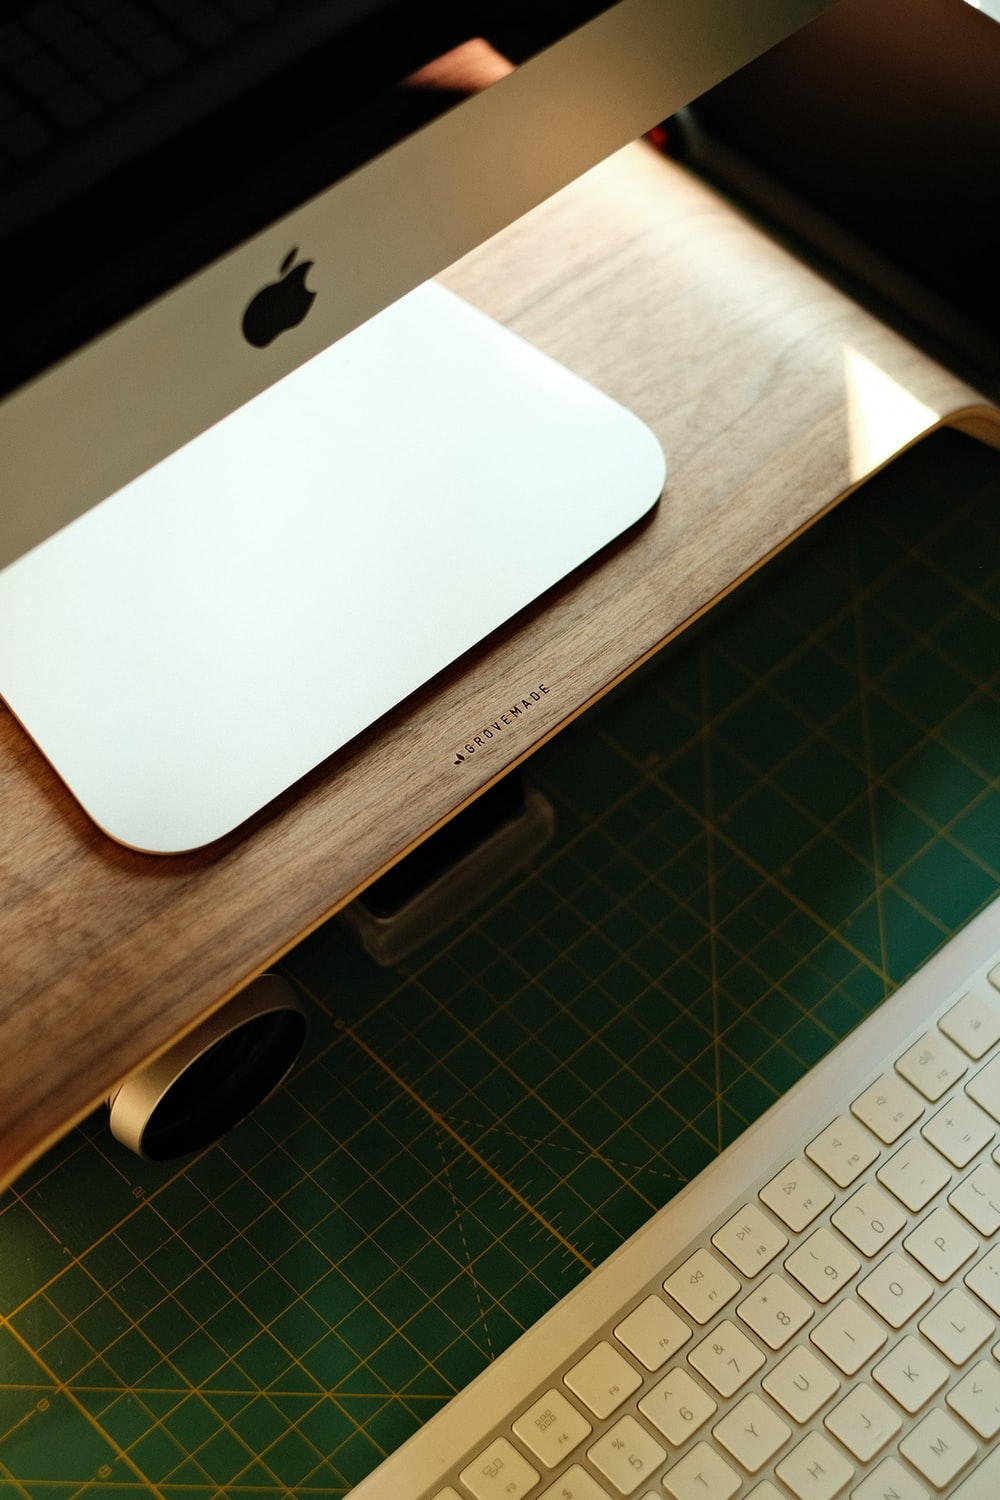 white apple magic keyboard on brown wooden table